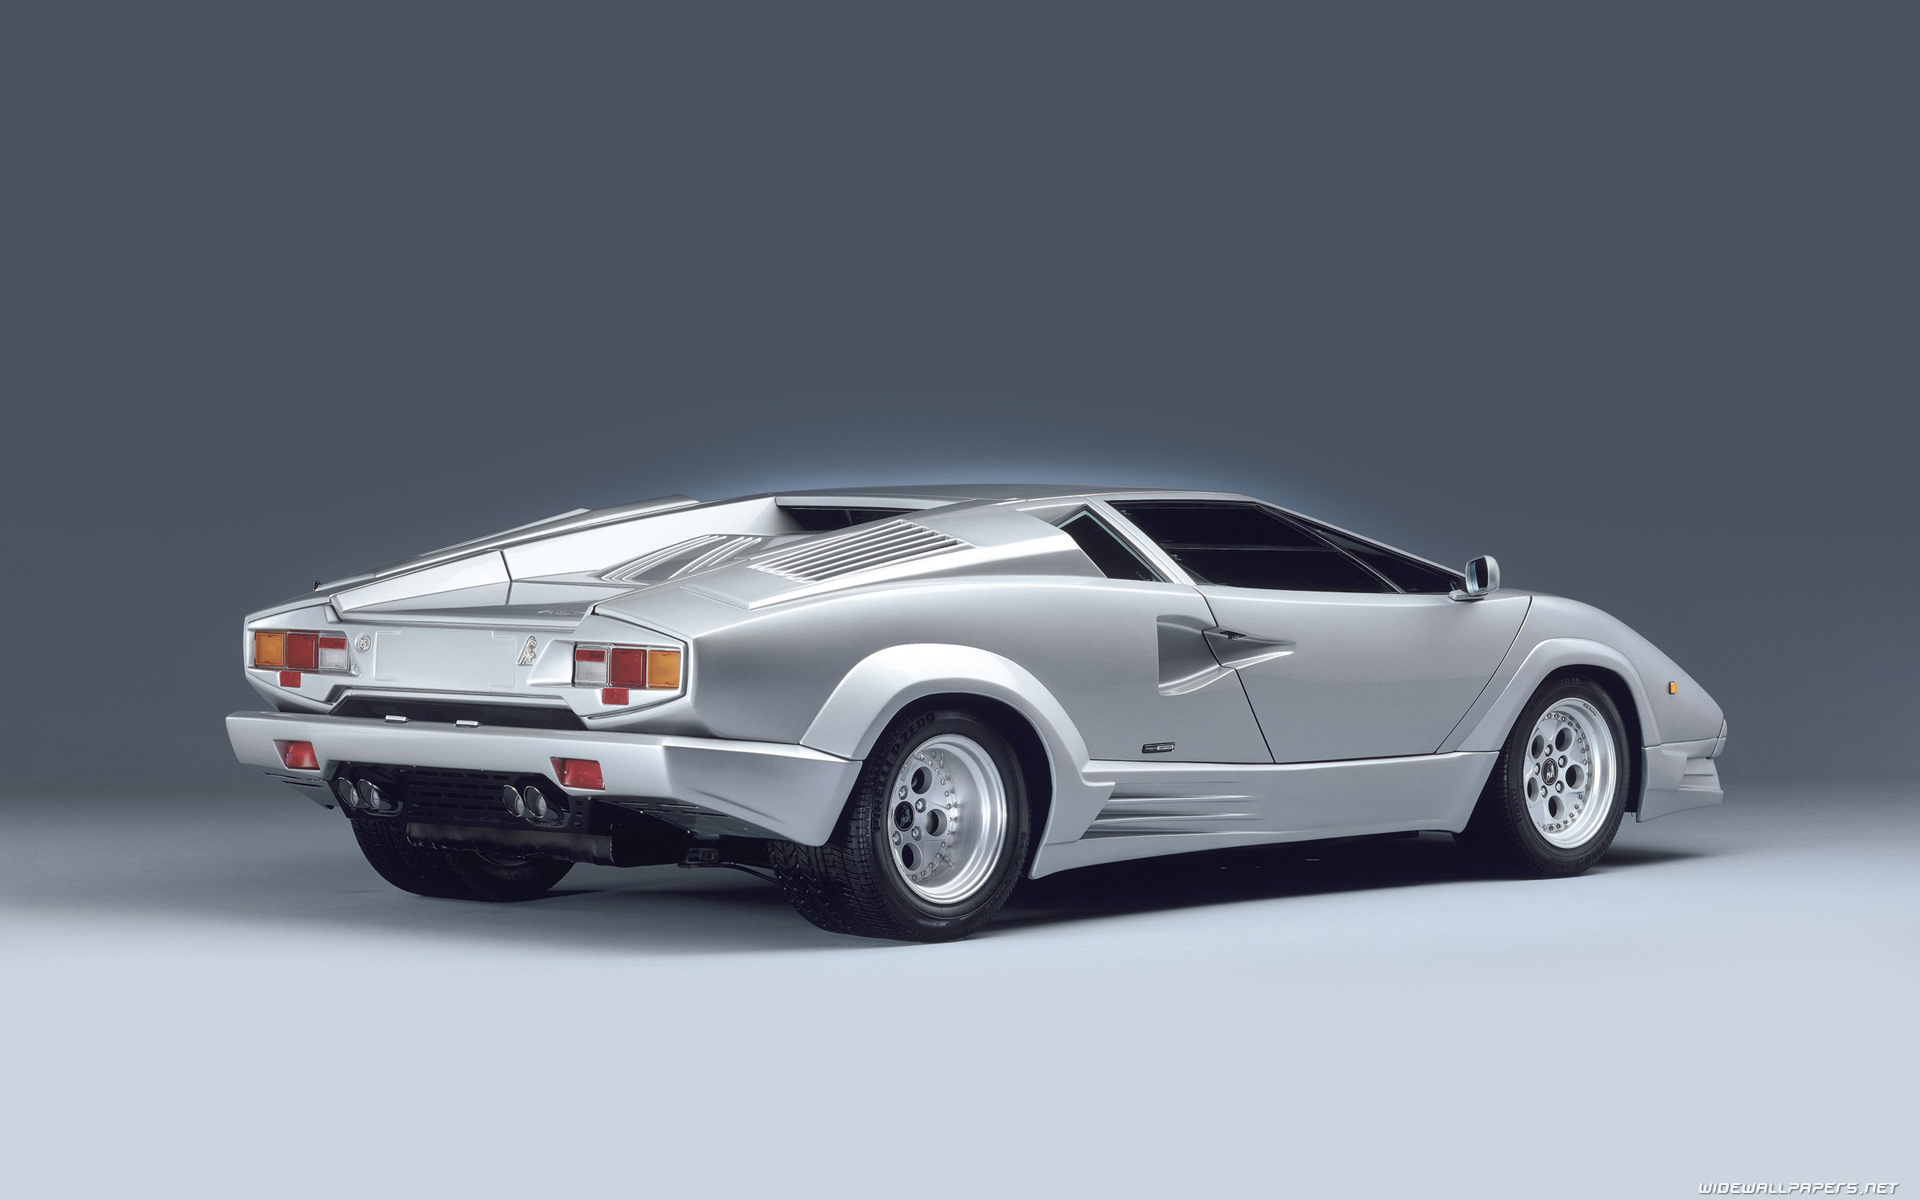 best Lamborghini Countach images on Pinterest Lamborghini